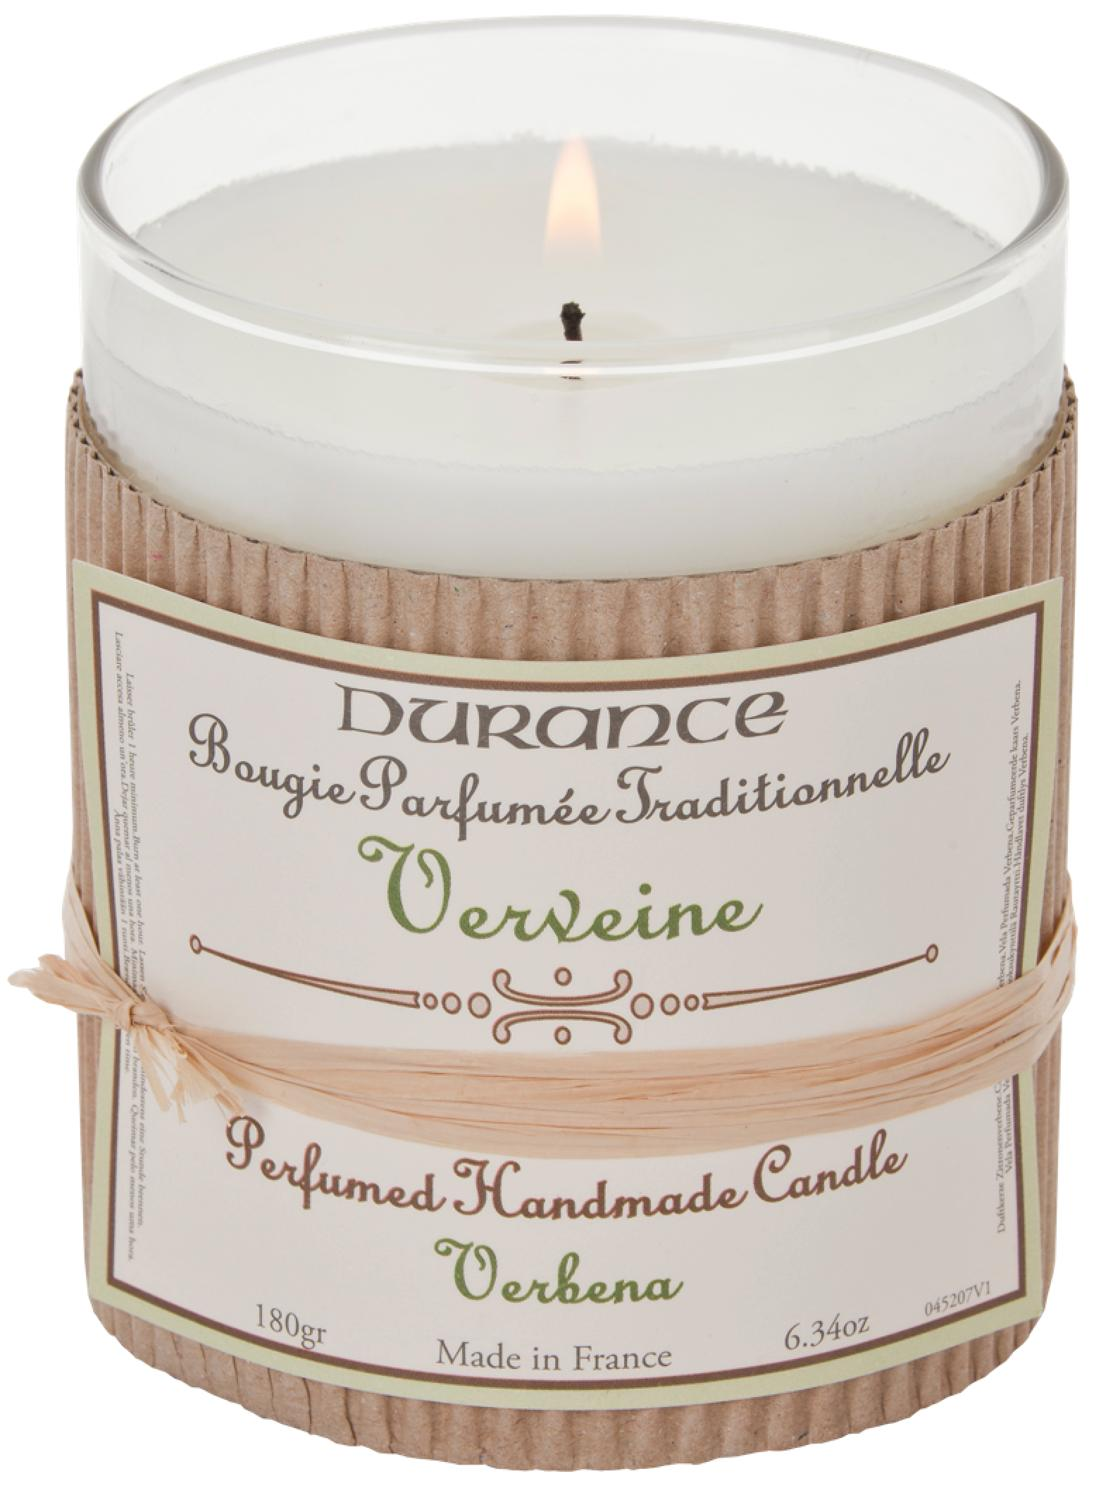 Scented Candle - Verbena 180gr